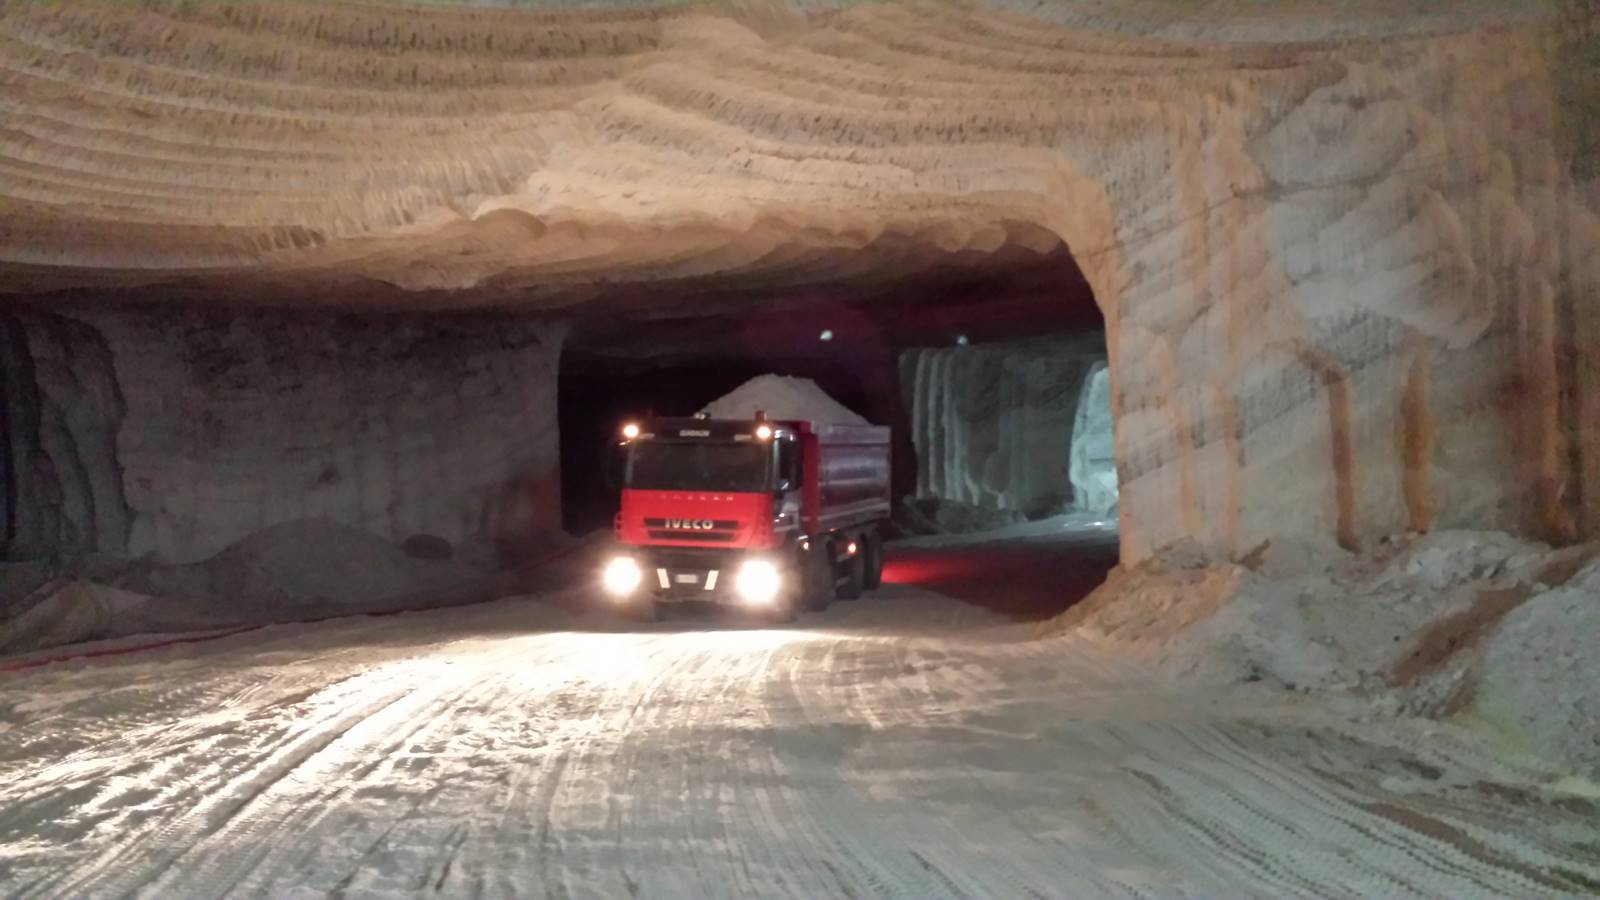 tunnels and ramps ready made for heavy vehicles